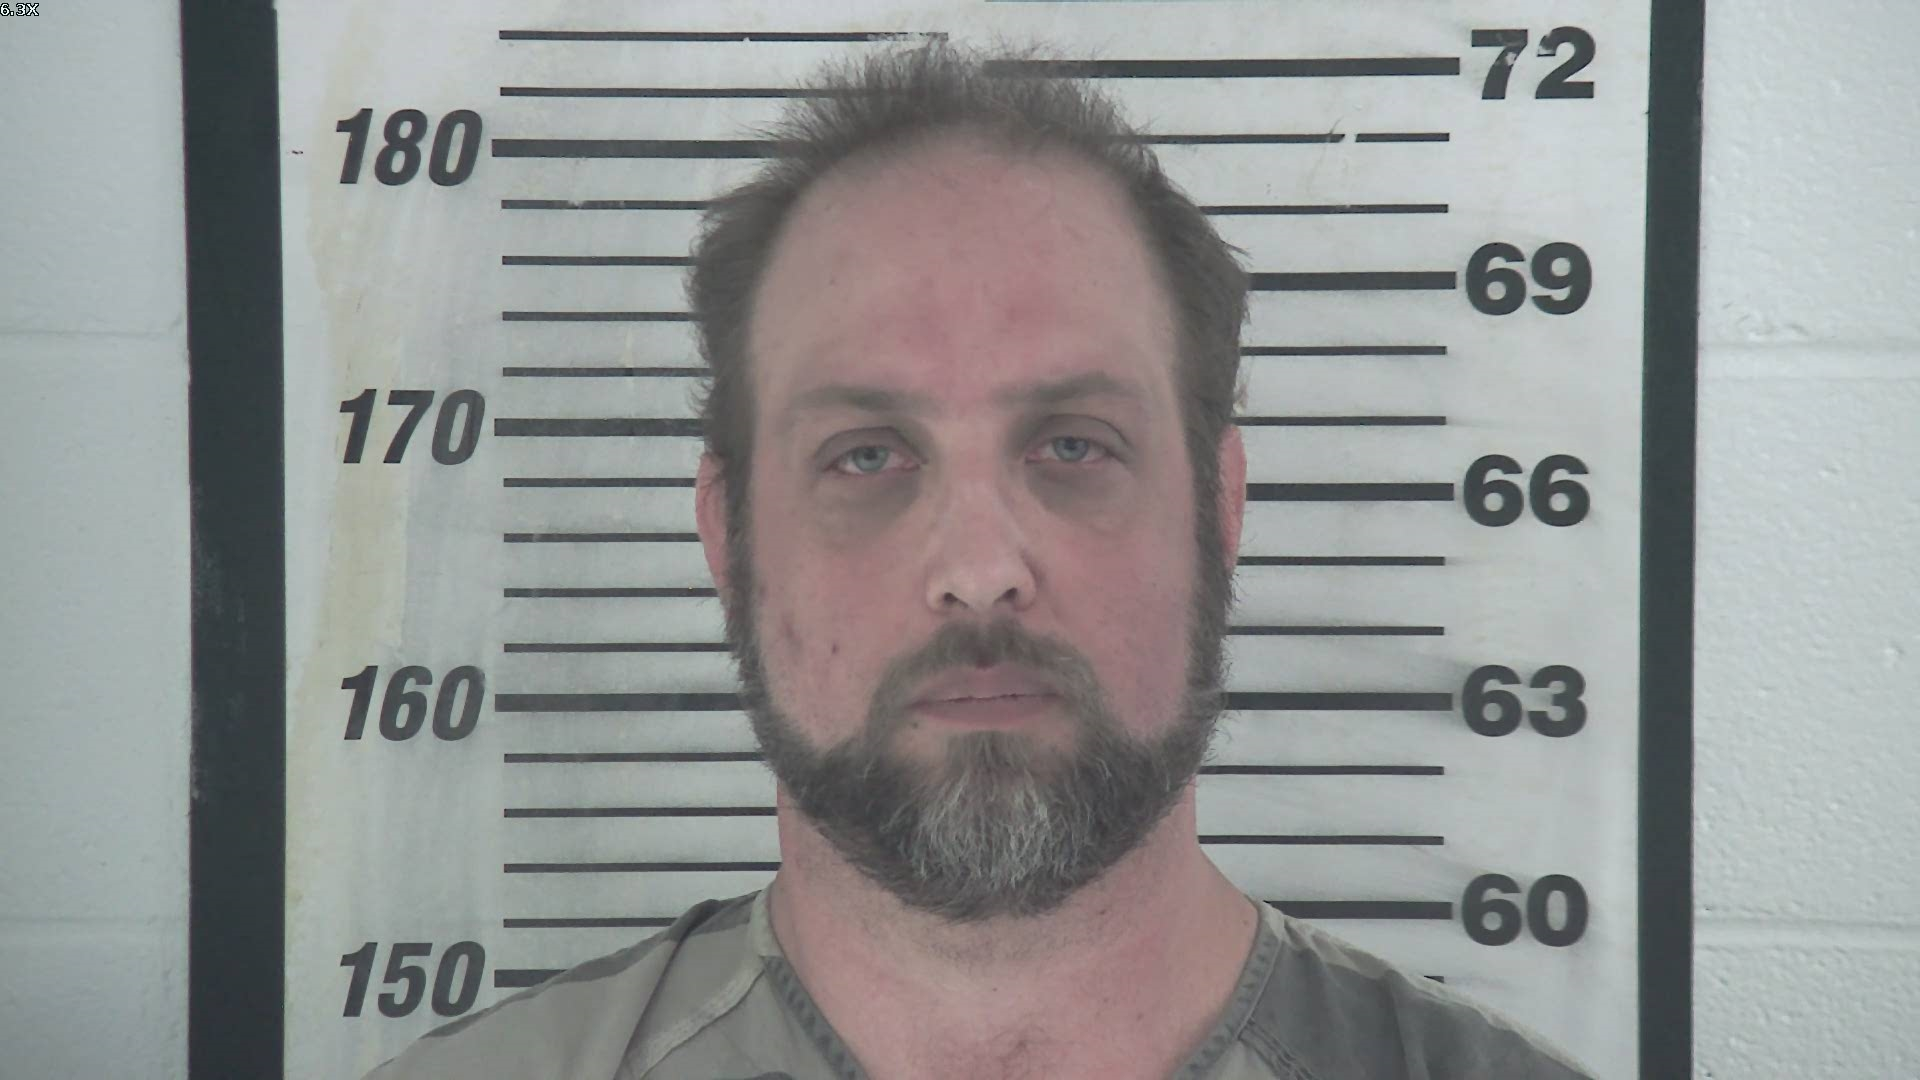 John Allender is accused of murdering his estranged wife, Cheryl (Campbell Co. Jail)